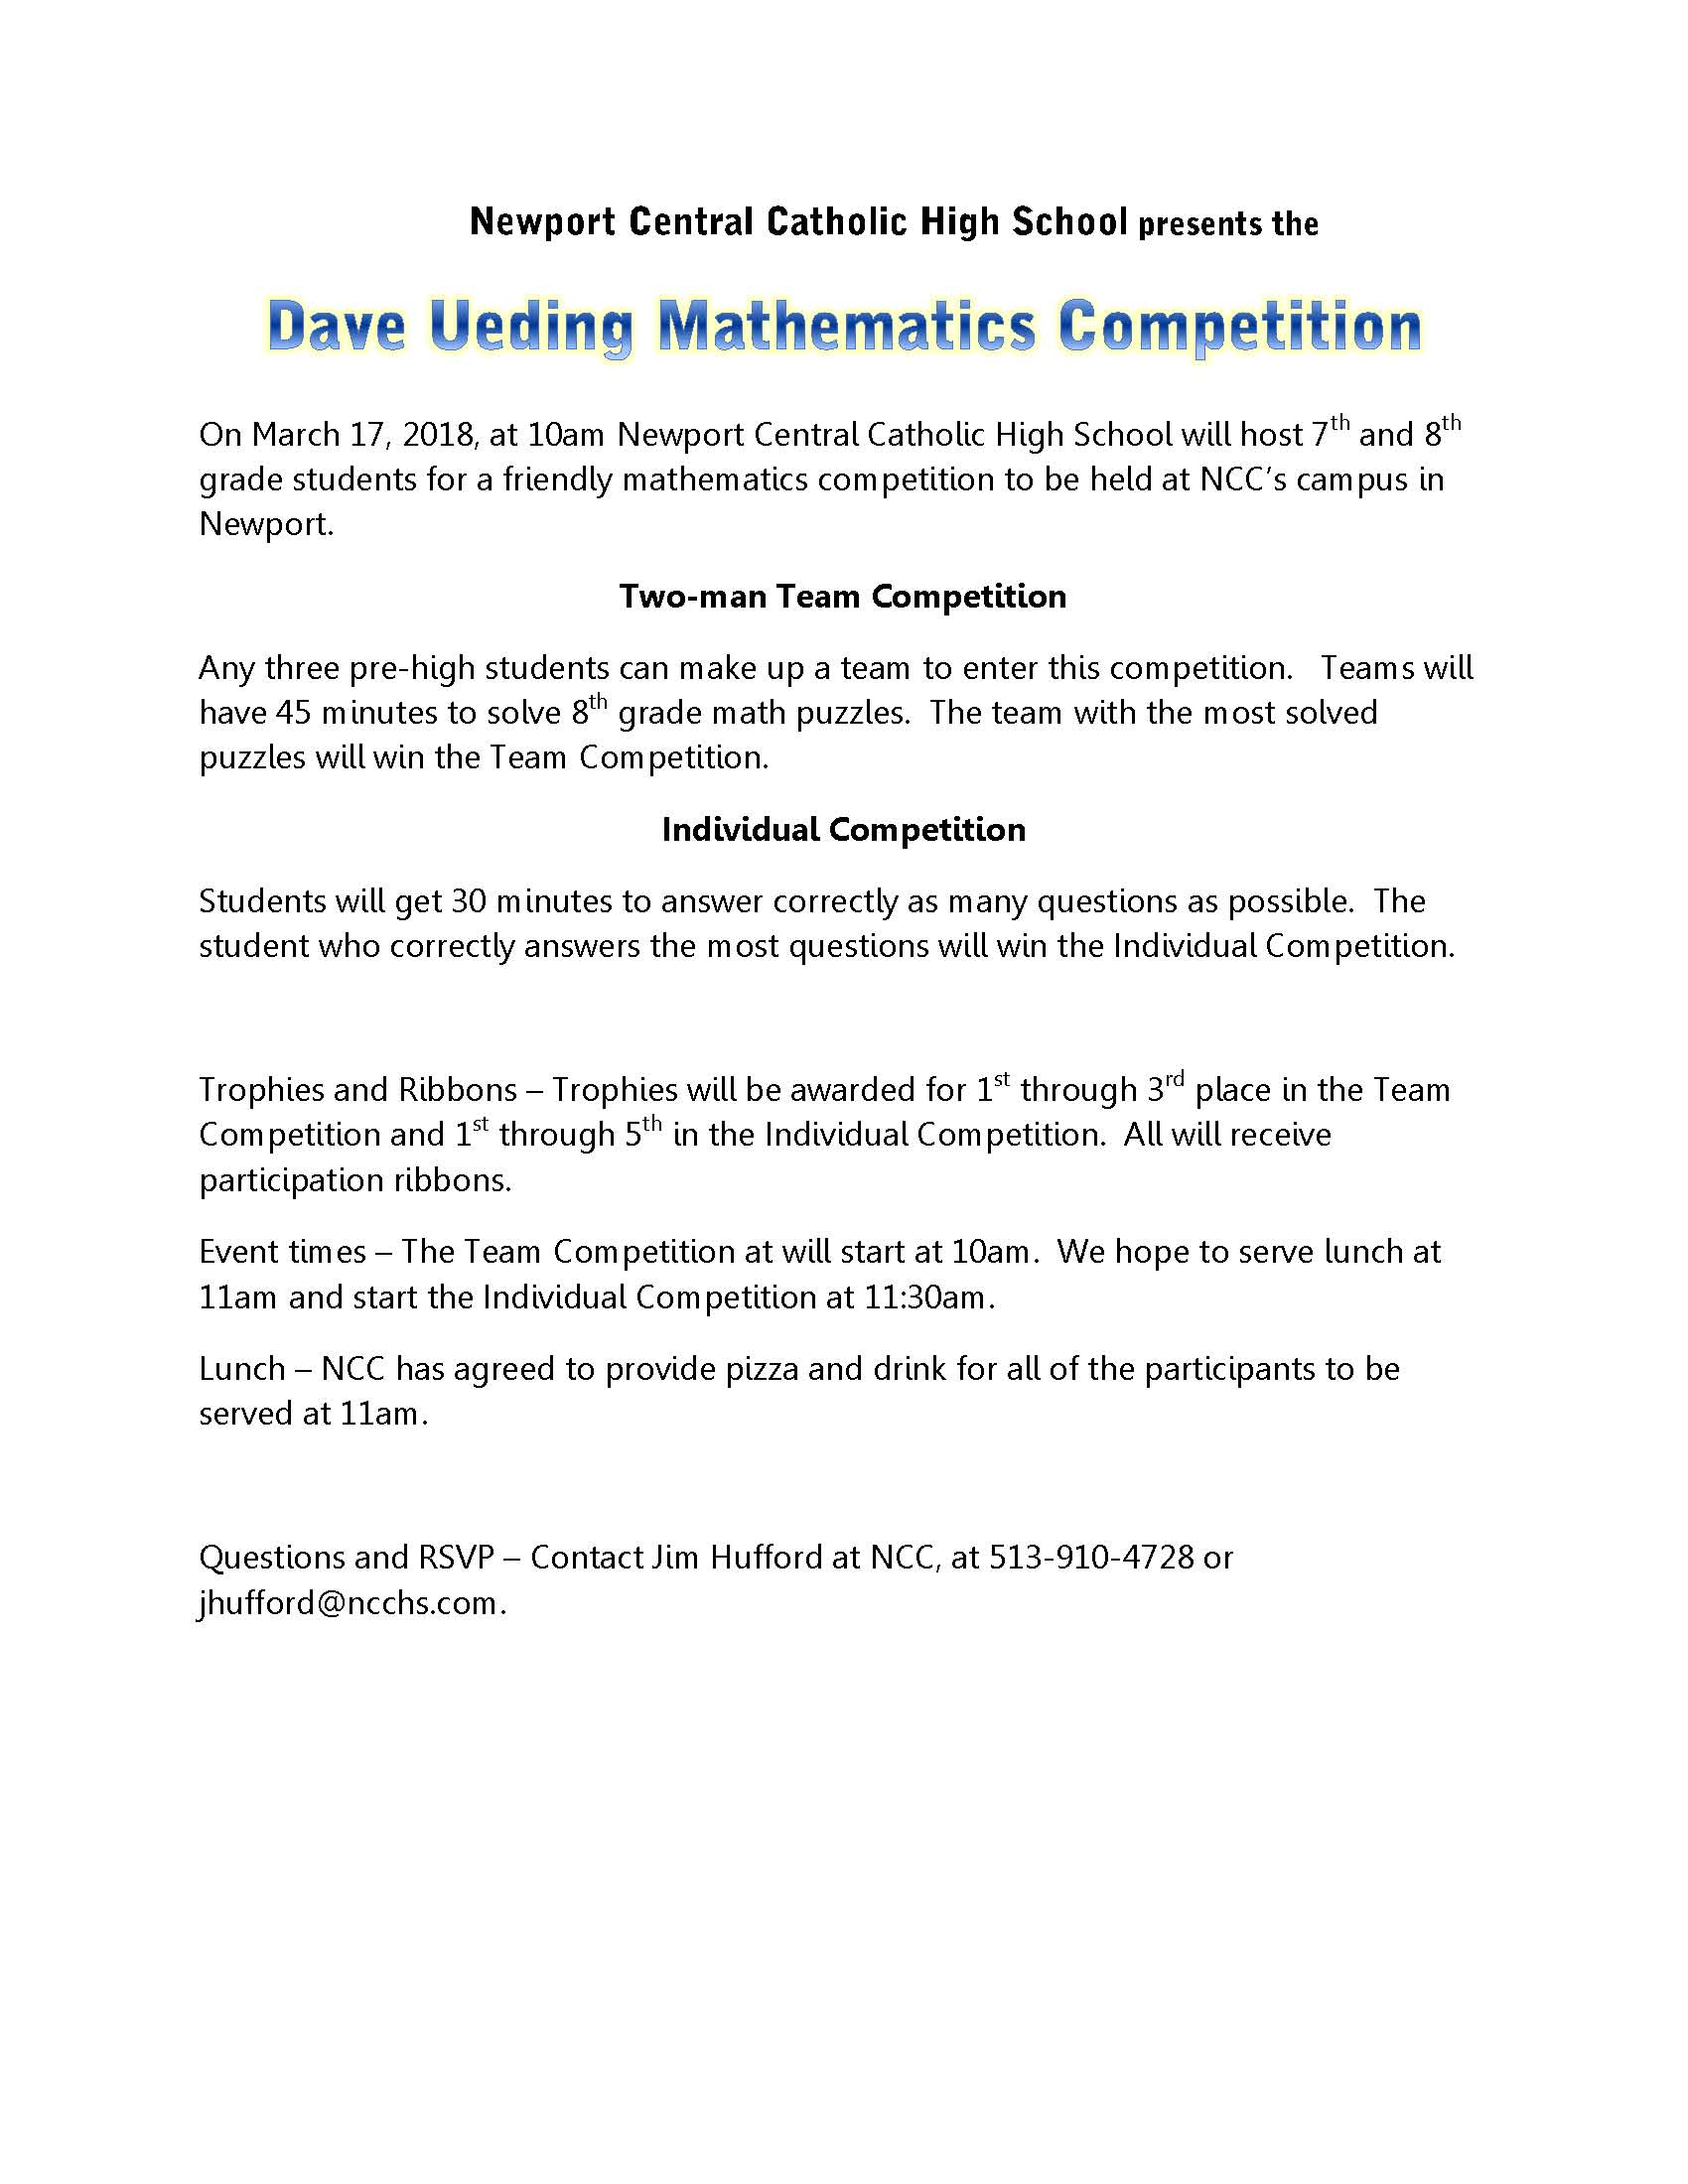 Math Competition - Flyer (1).jpg